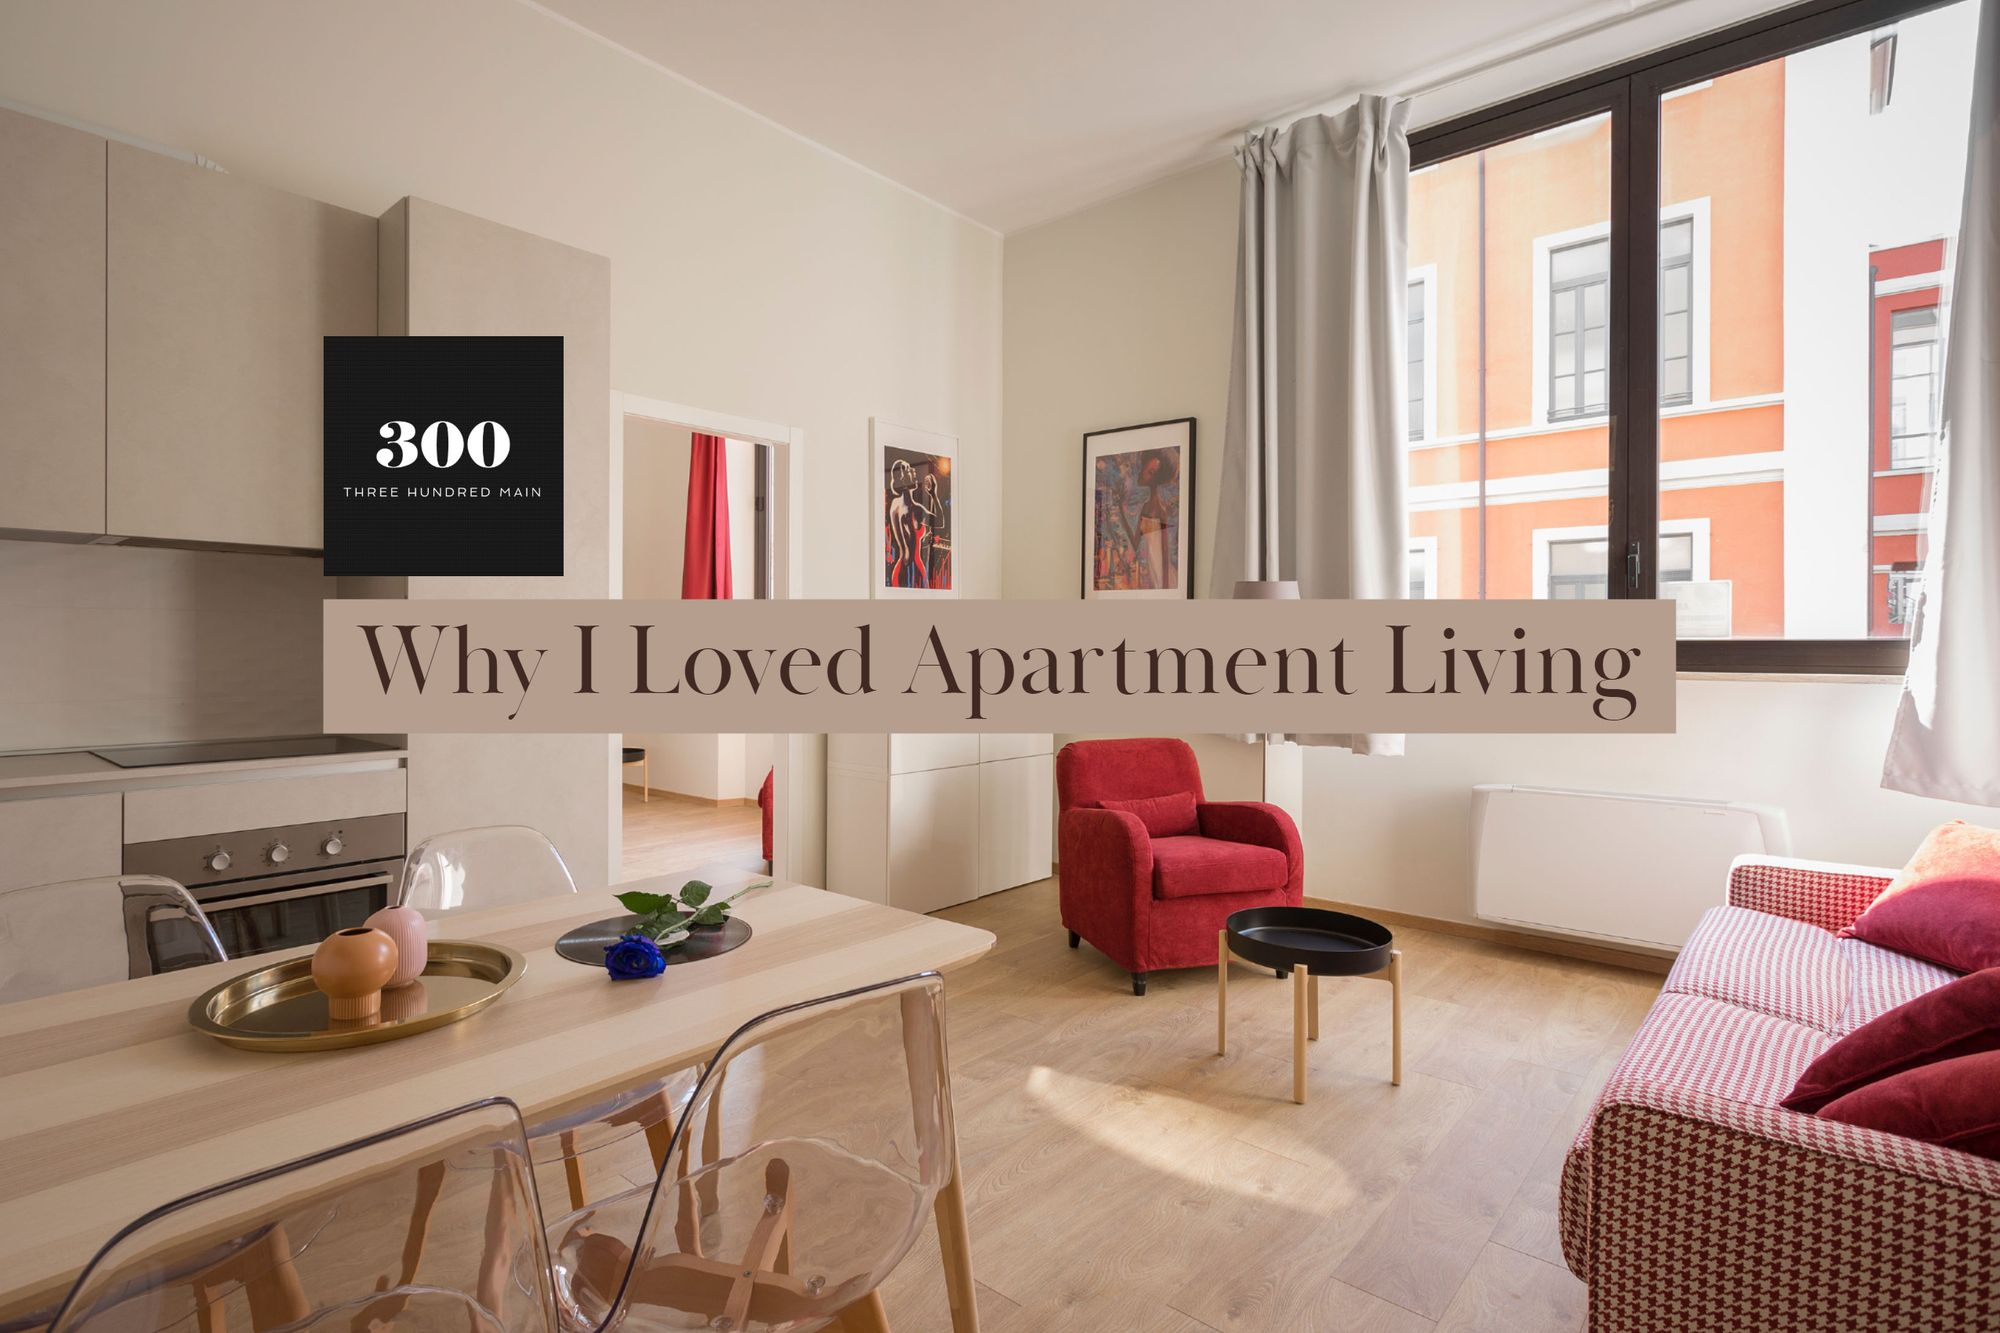 The Reason Why Susan Portelance One Of Our Local Writers Loved Apartment Living Link In 300mainwinnipeg B Apartment Living Apartment My First Apartment